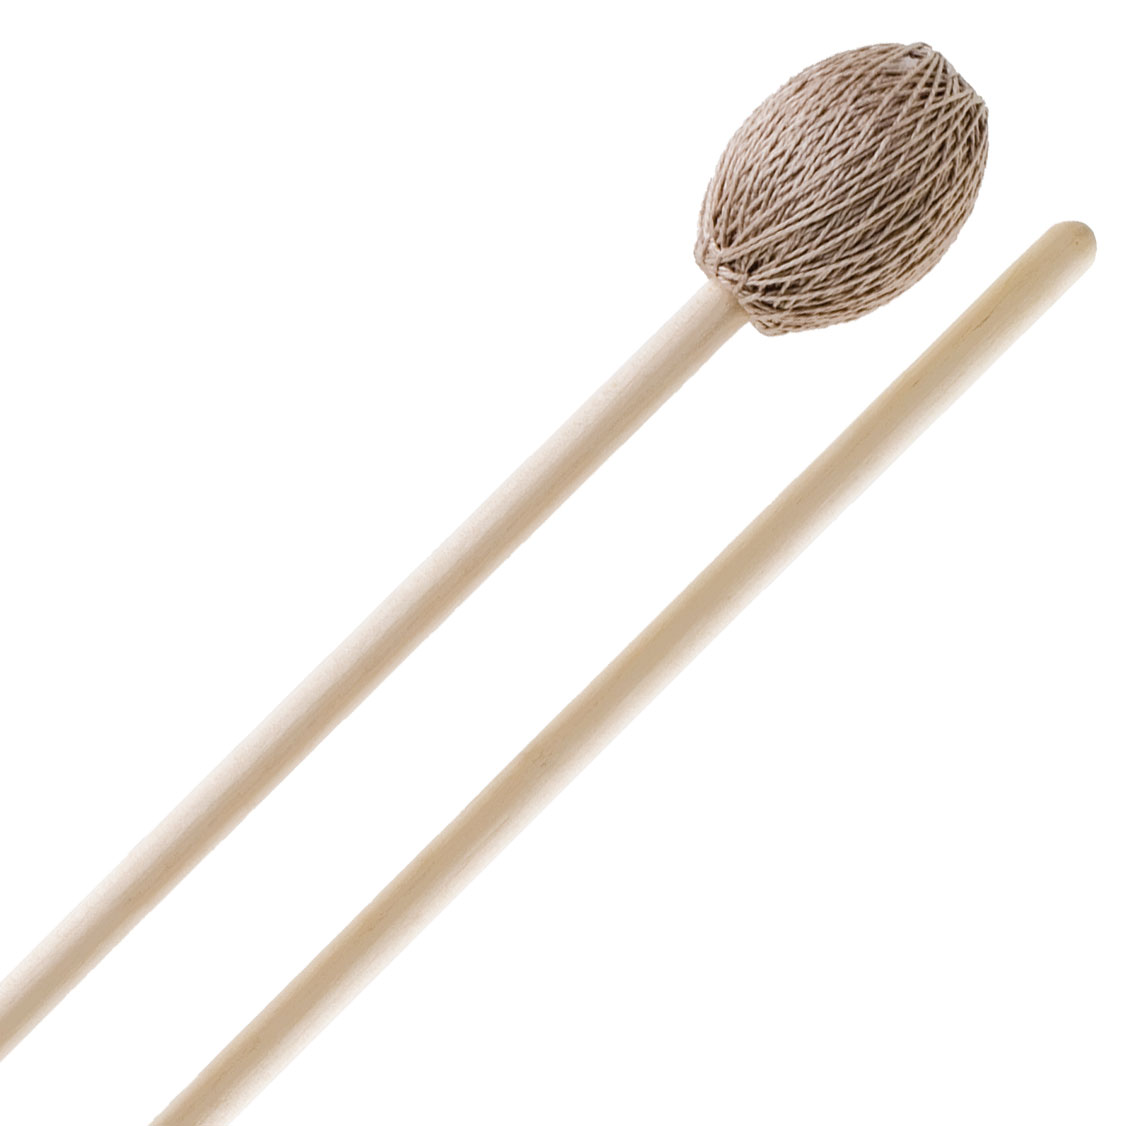 Promark Jeff Moore Signature Medium Soft Marimba Mallets